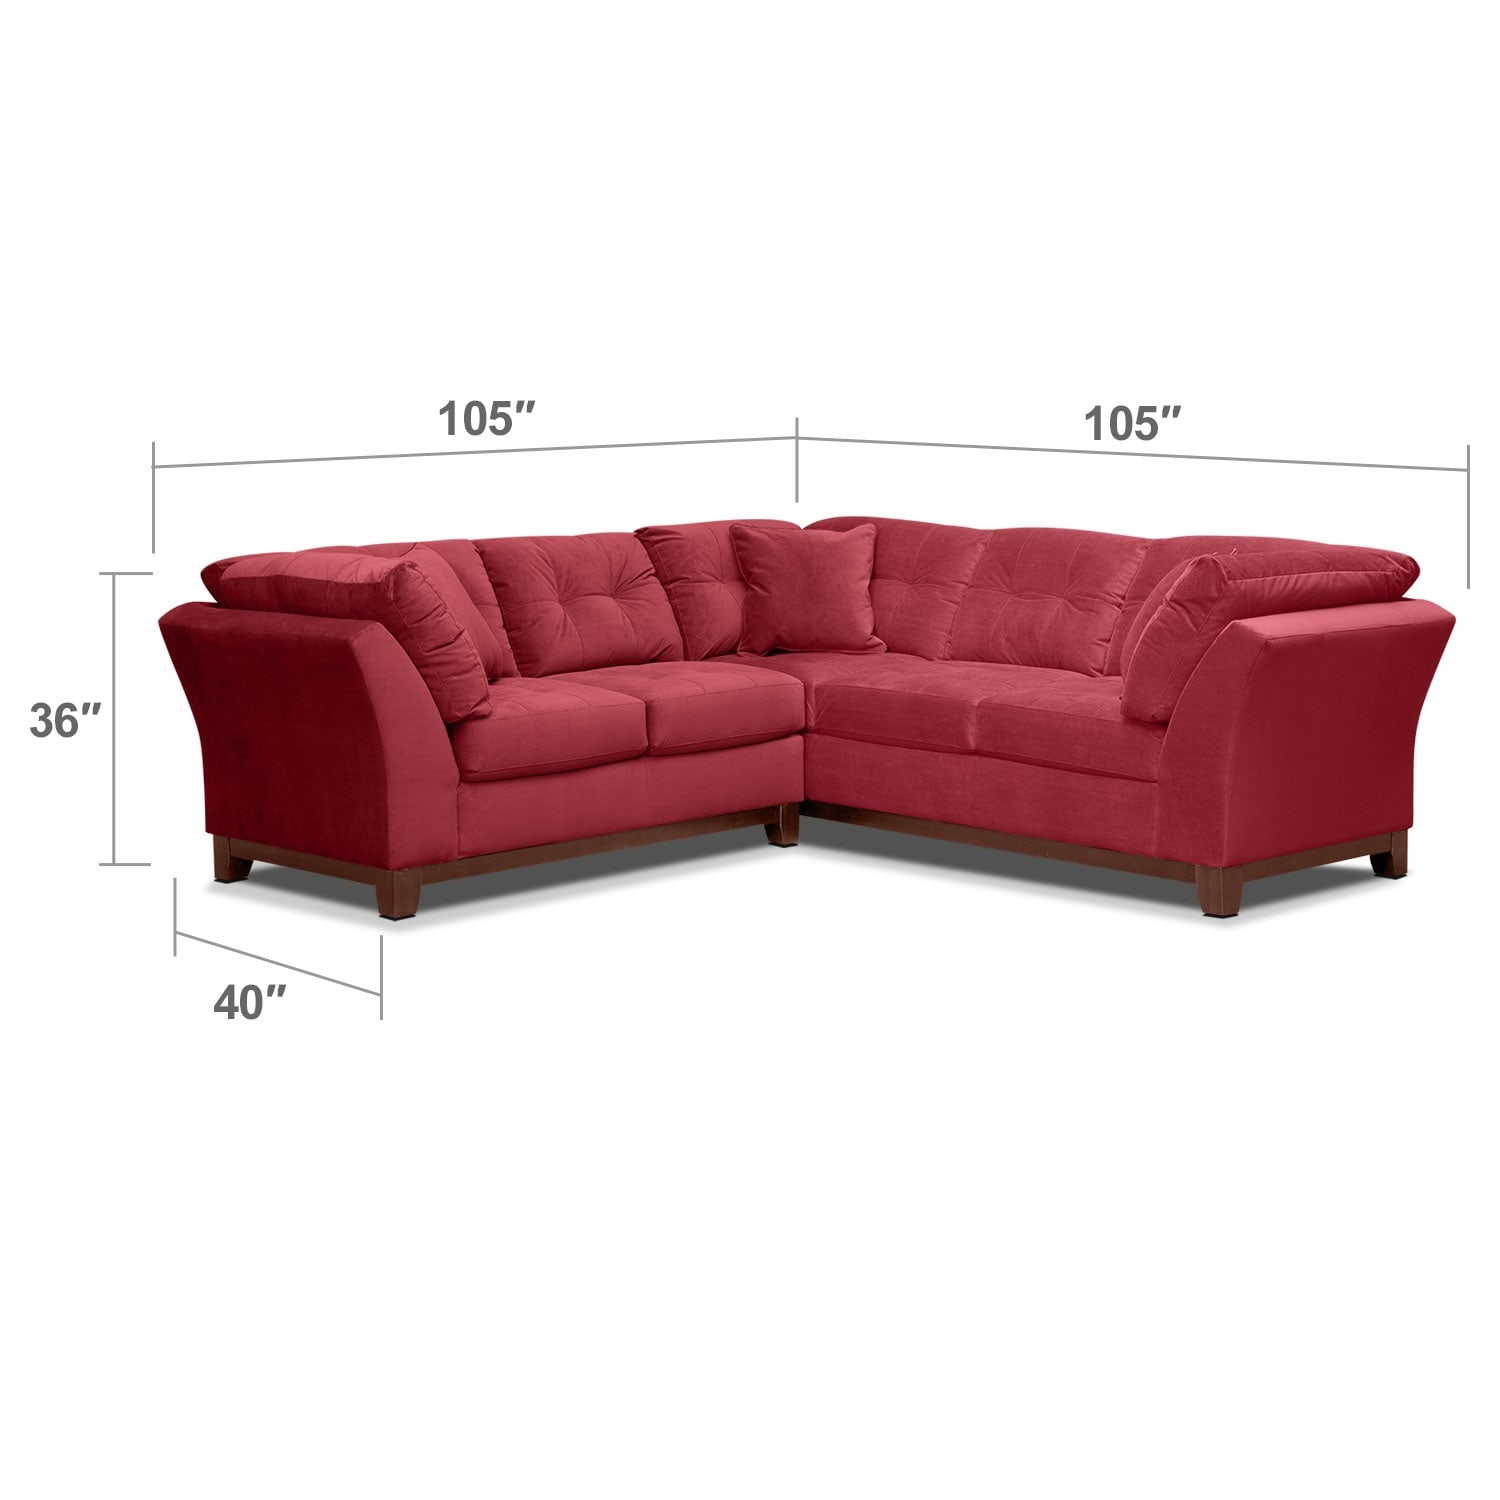 Living Room Furniture - Solace Poppy II 2 Pc. Sectional (Alternate II)